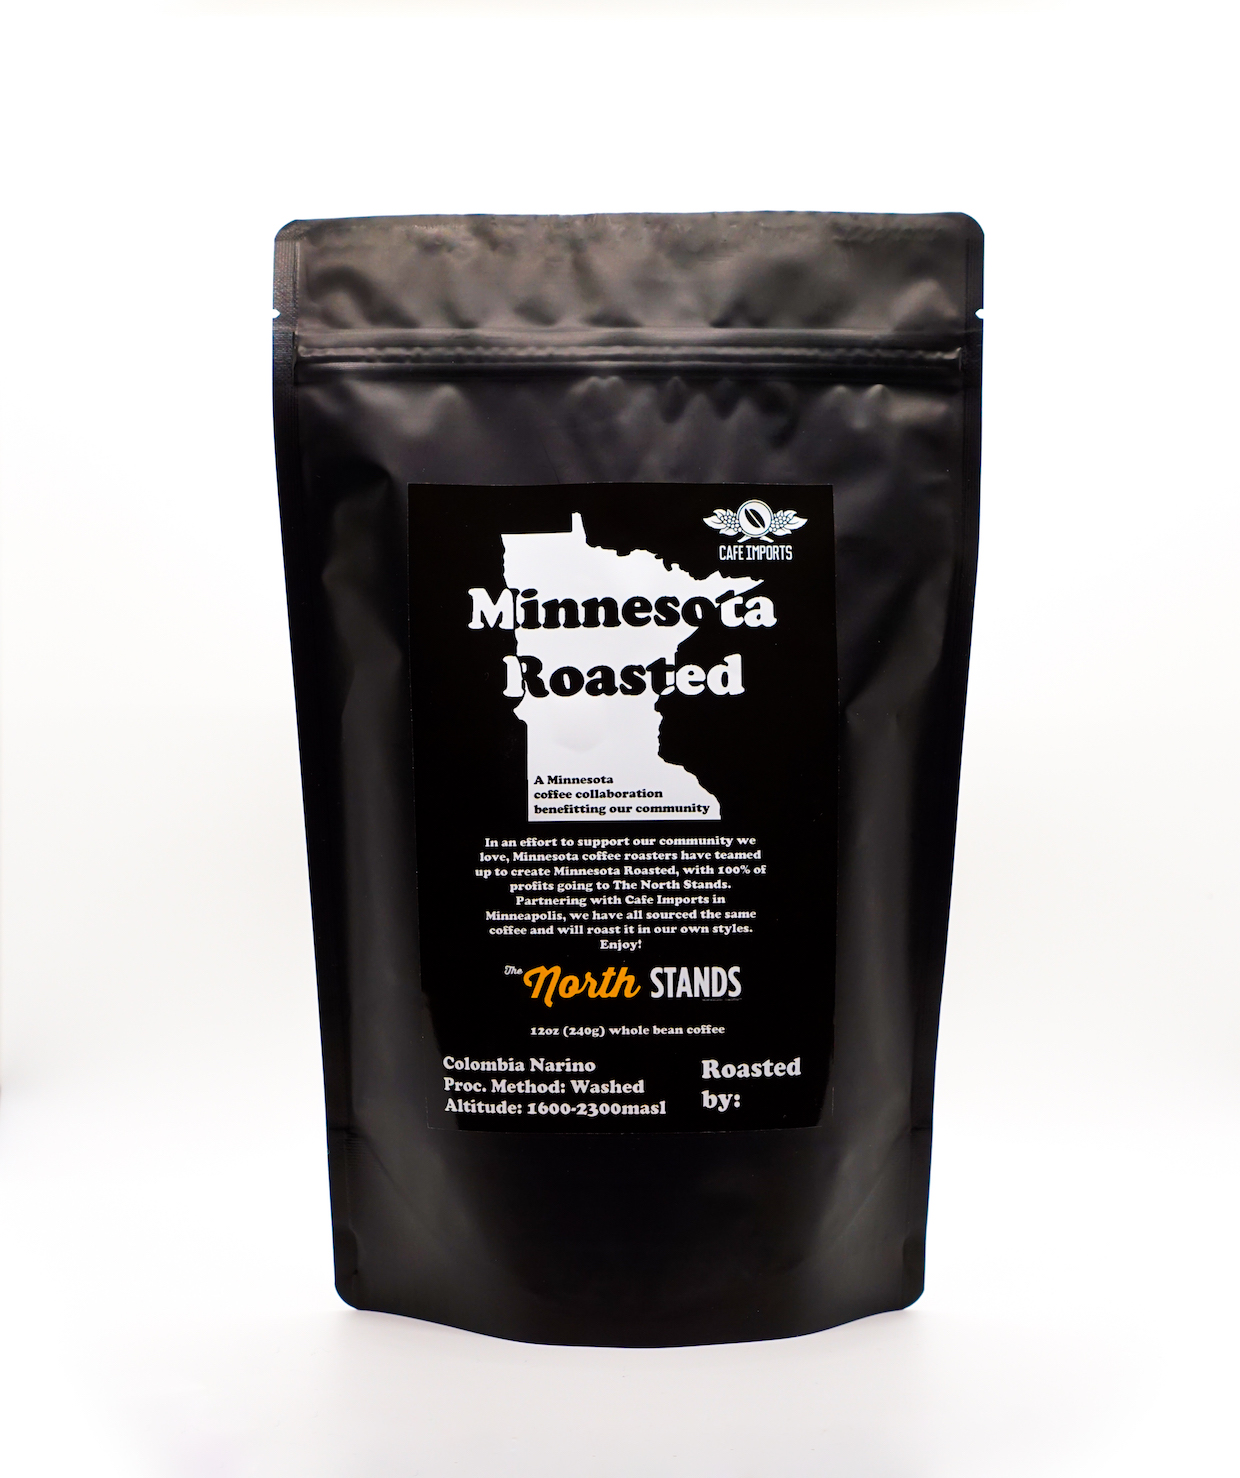 MN Roasted bag picture